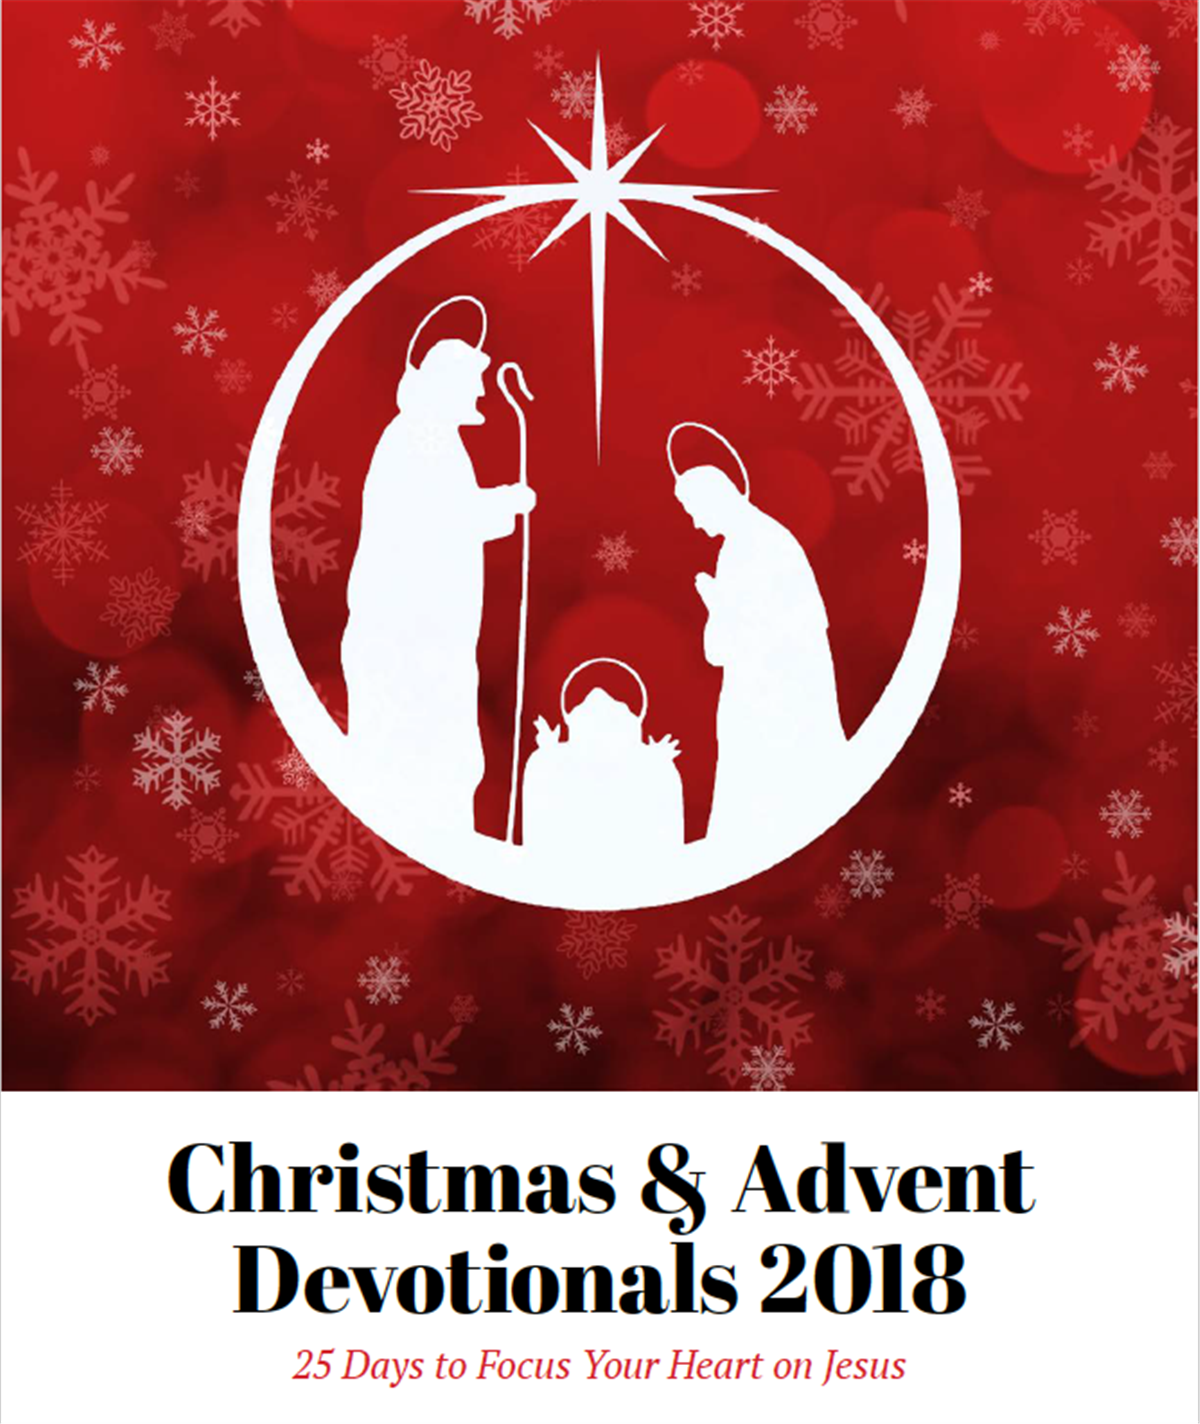 Christmas and Advent Devotionals 2018 - 25 Days to Focus Your Heart on Jesus